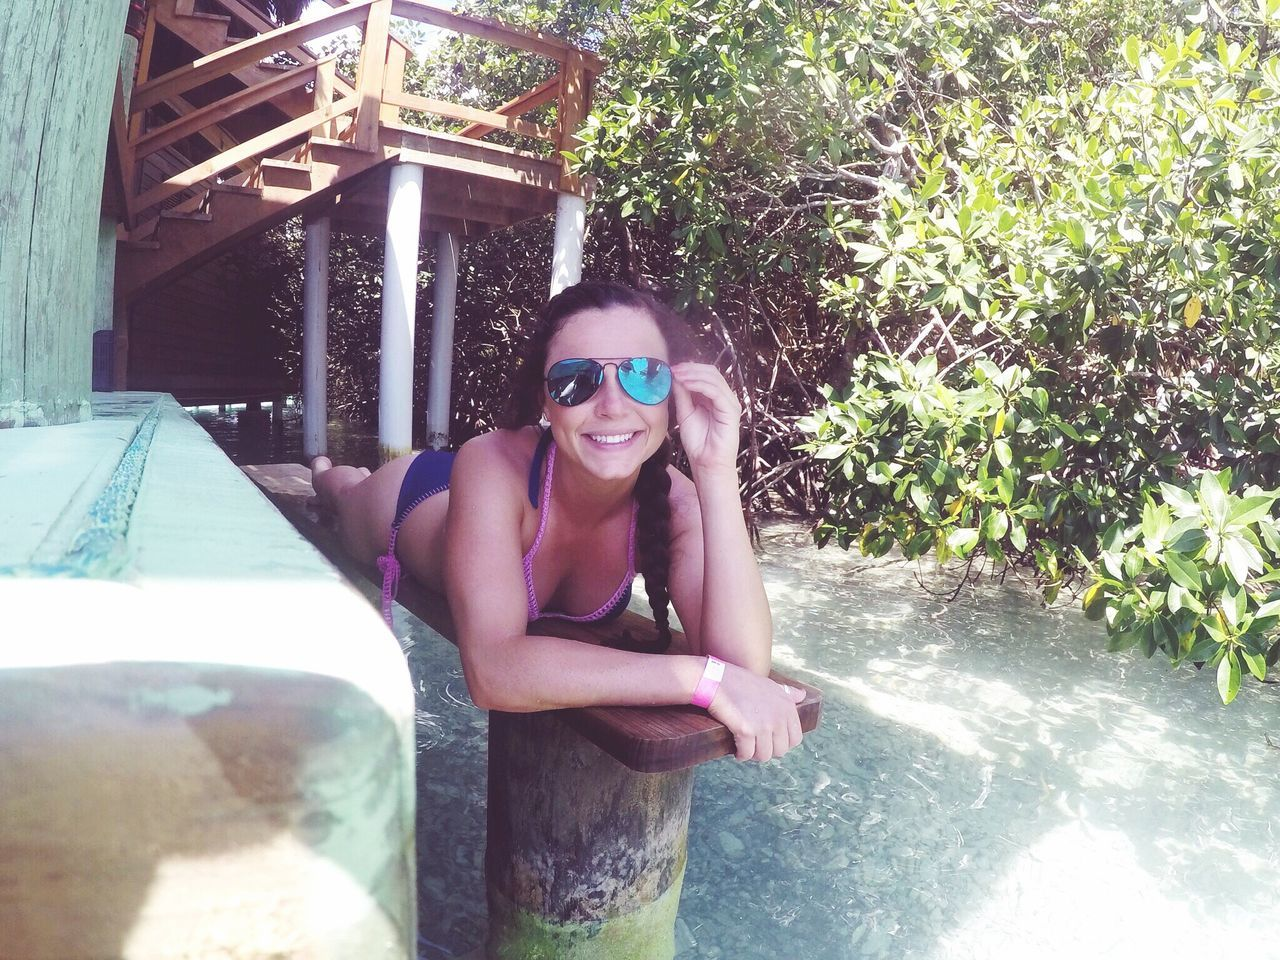 Sunglasses Young Adult Young Women Looking At Camera Portrait Beautiful Woman One Person Real People Lifestyles Happiness Smiling Outdoors Leisure Activity Front View Day Beauty Tree Eyeglasses  Swimming Pool One Young Woman Only Honduras Pretty Girl Tree First Eyeem Photo Vacations